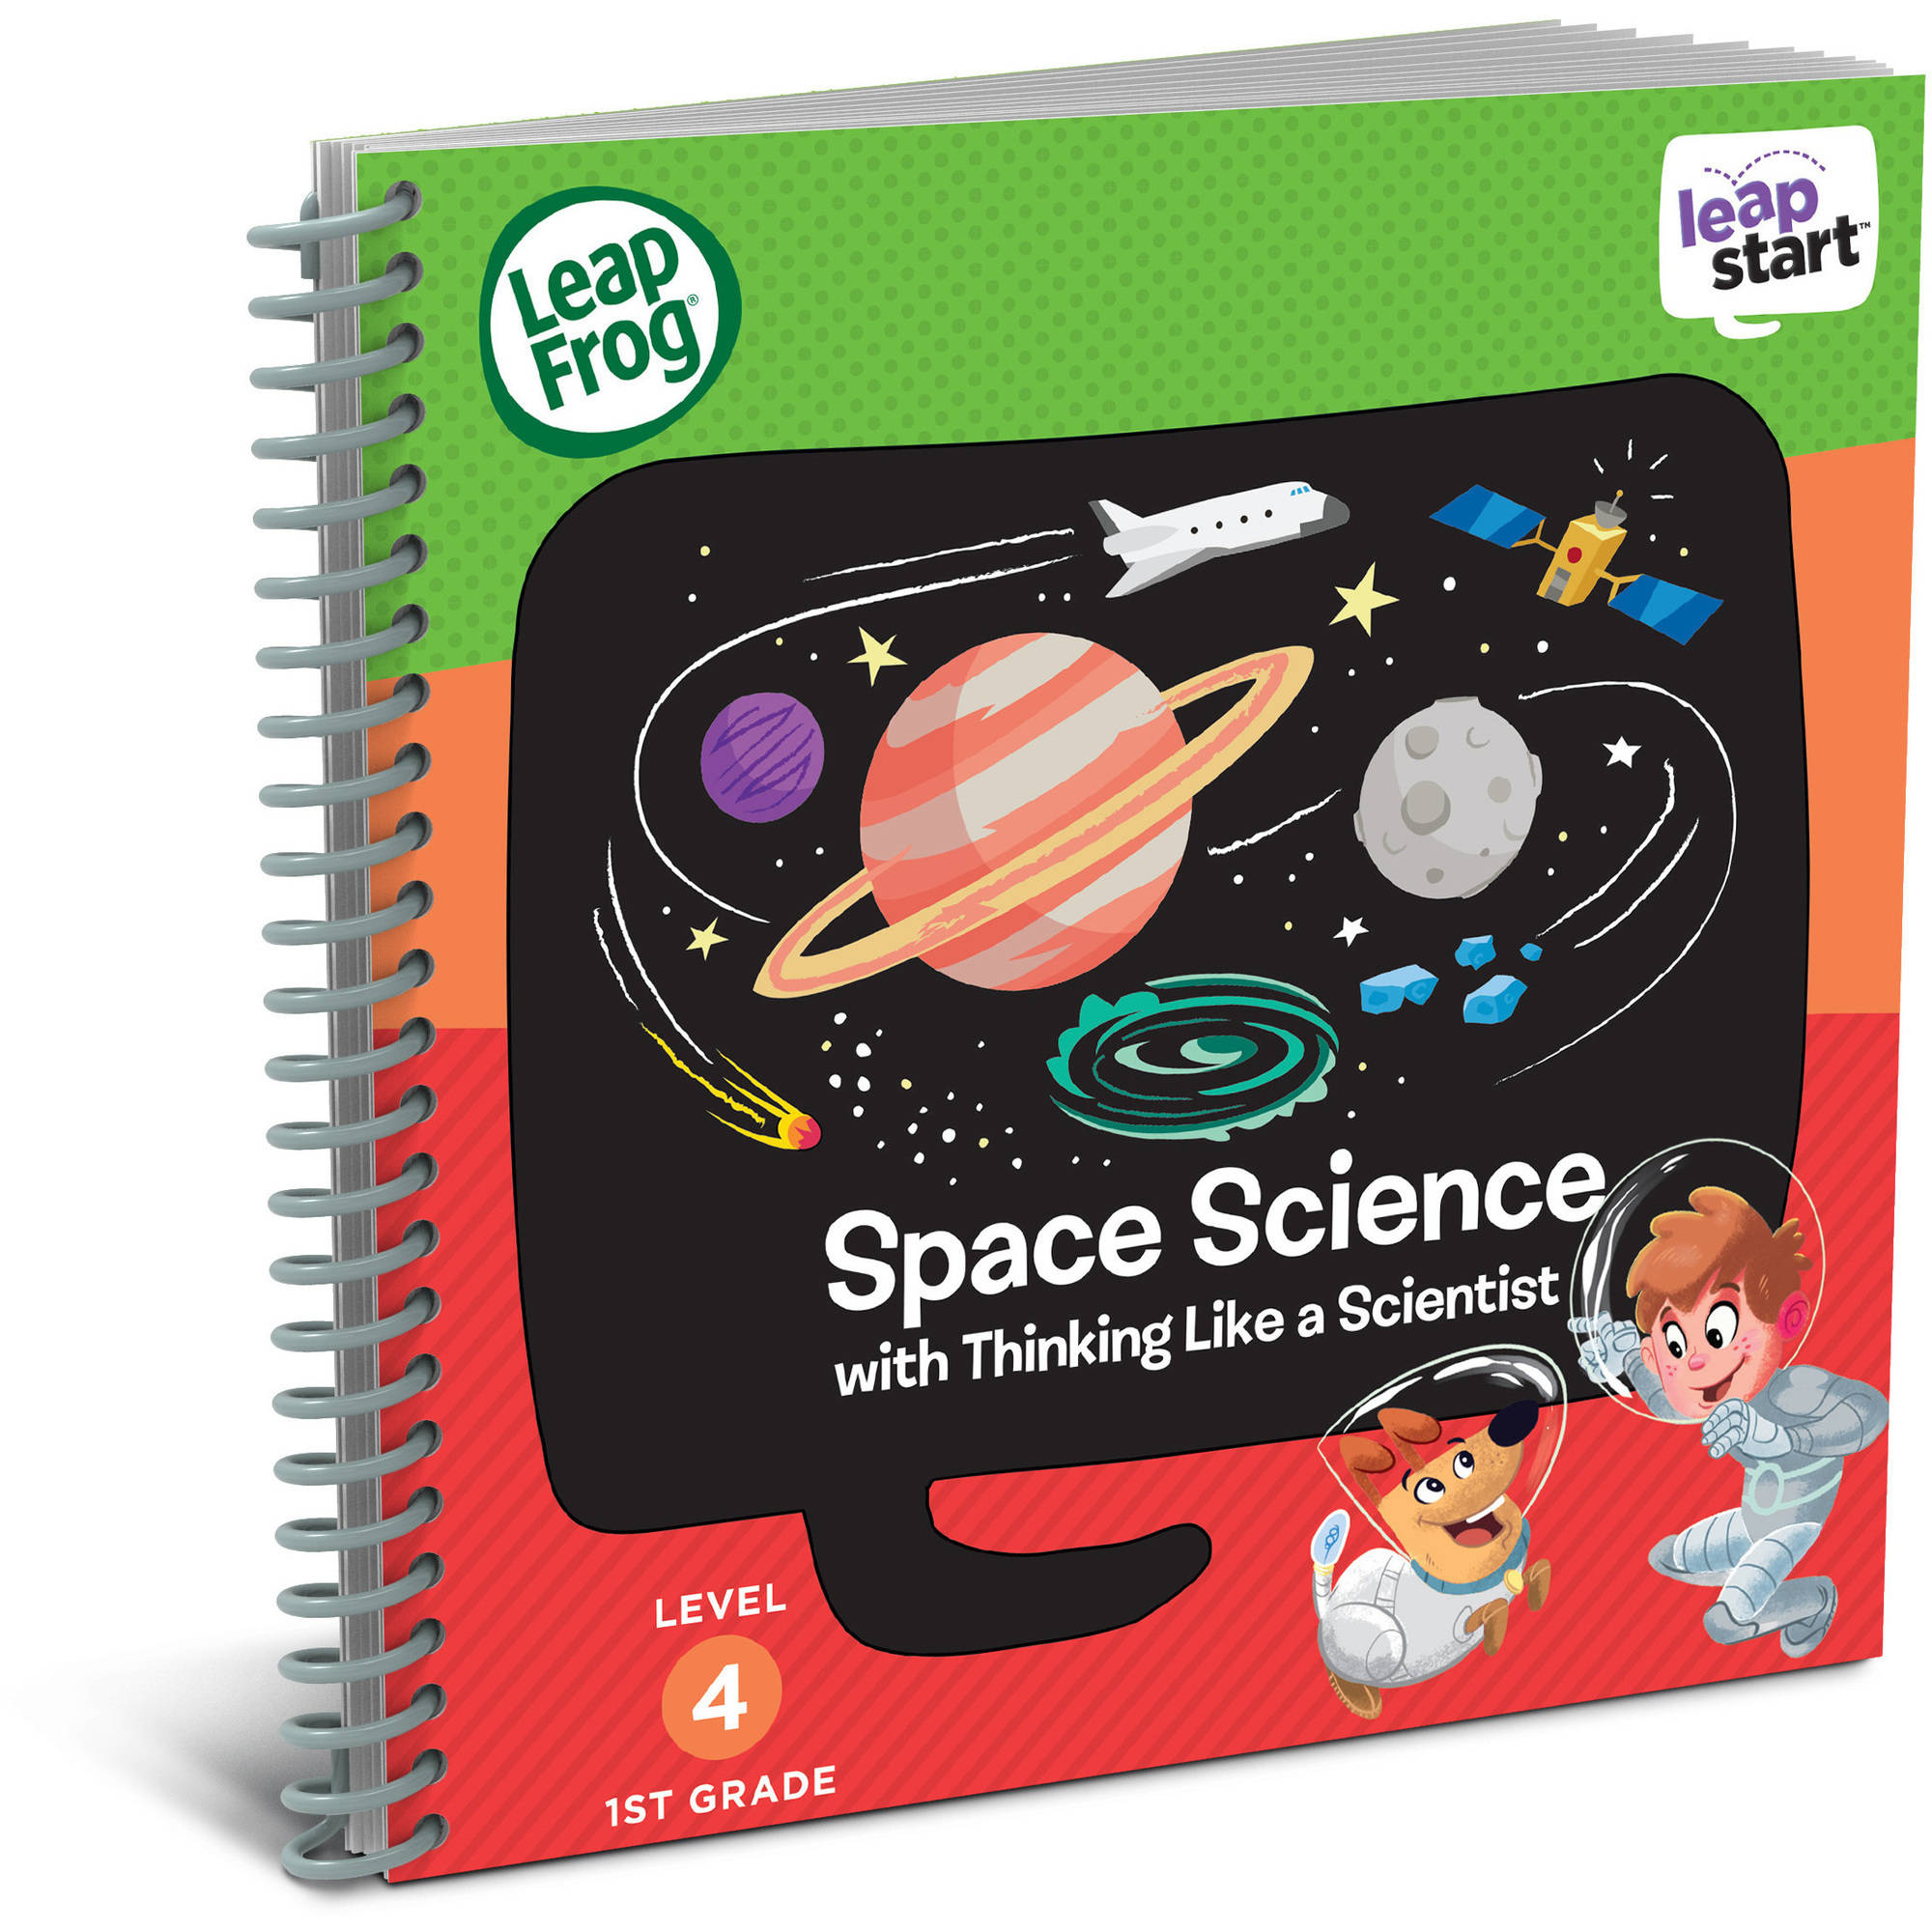 LeapFrog LeapStart 1st Grade Activity Book: Space Science and Thinking Like a Scientist